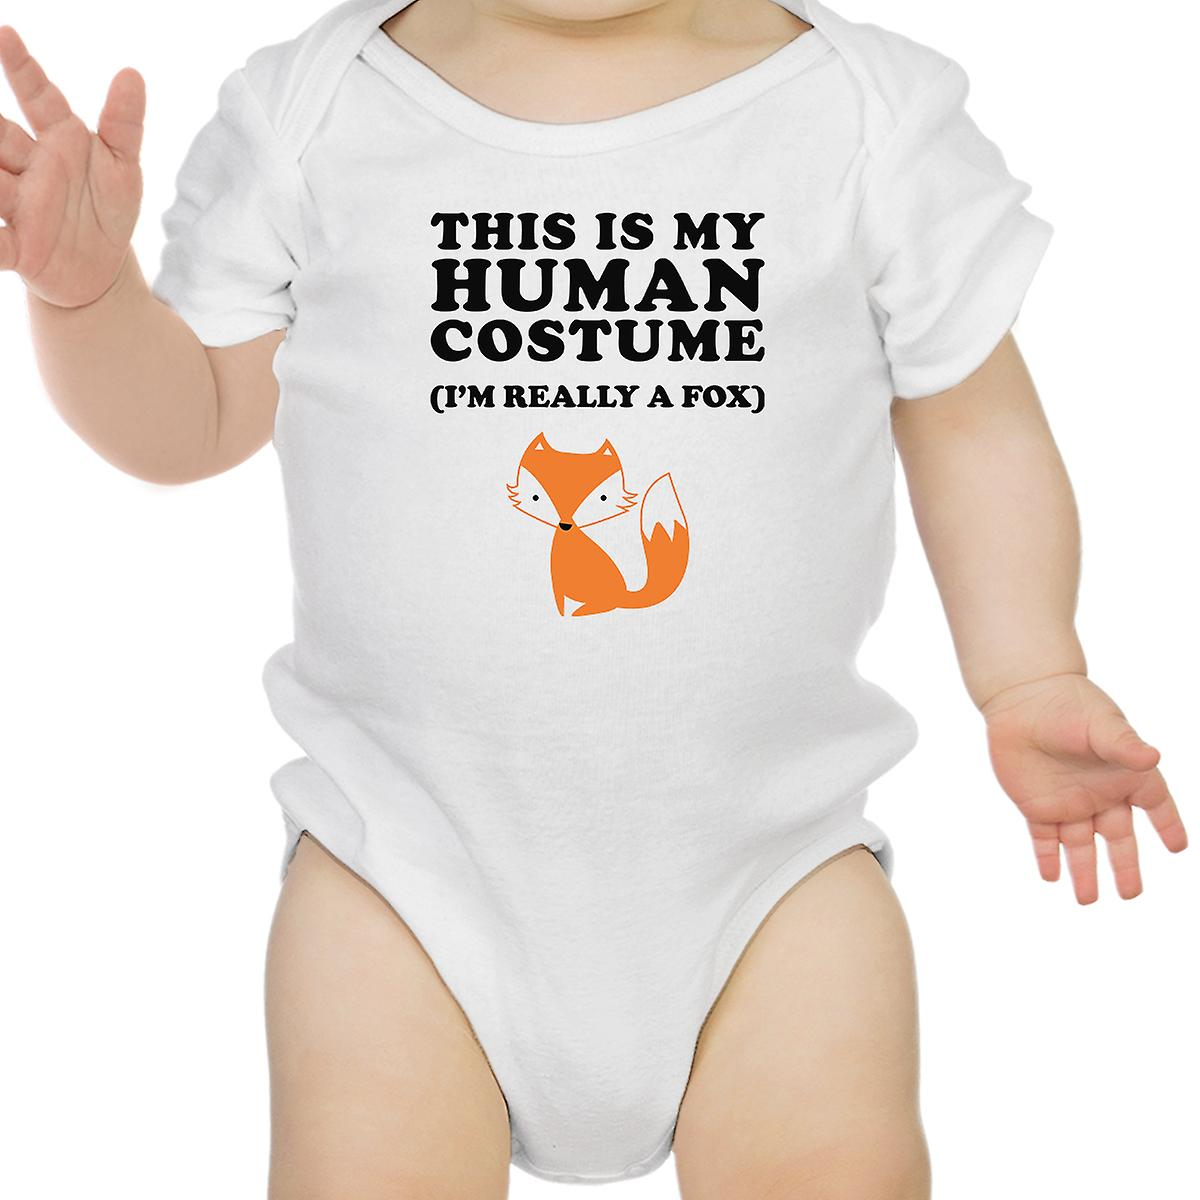 This IS My Human Costume Halloween Baby Bodysuit Funny Infant Bodysuit